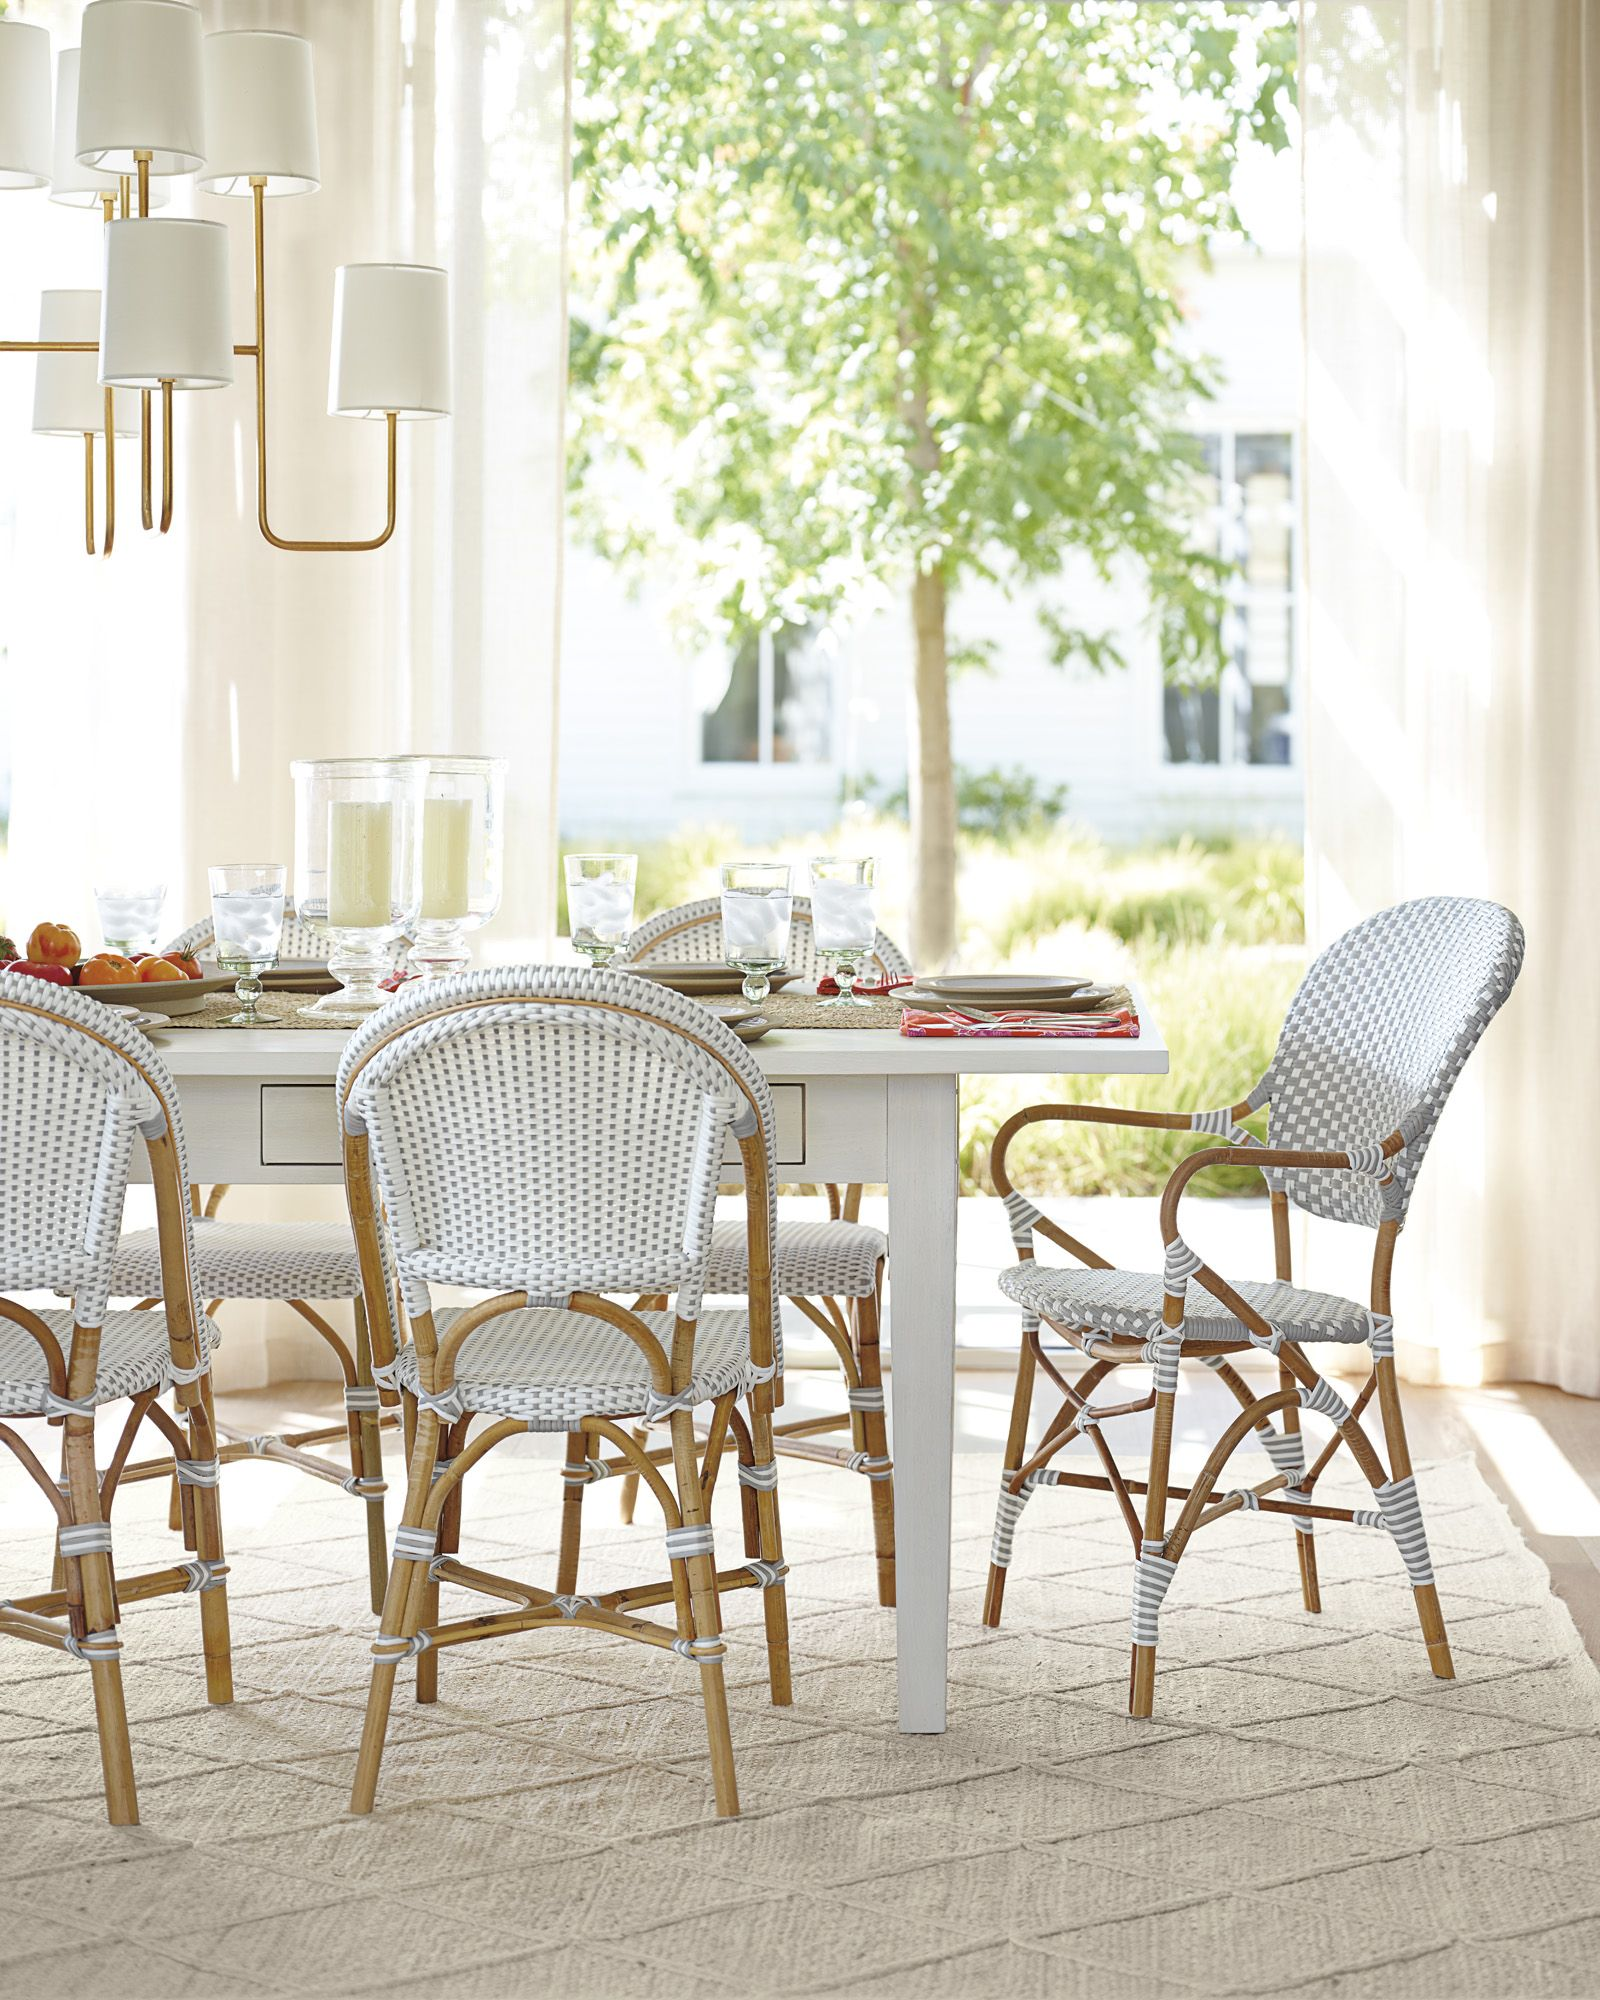 Fairmont Chandelierfairmont Chandelier  Harp  Pinterest Interesting Jute Rug In Dining Room Design Decoration